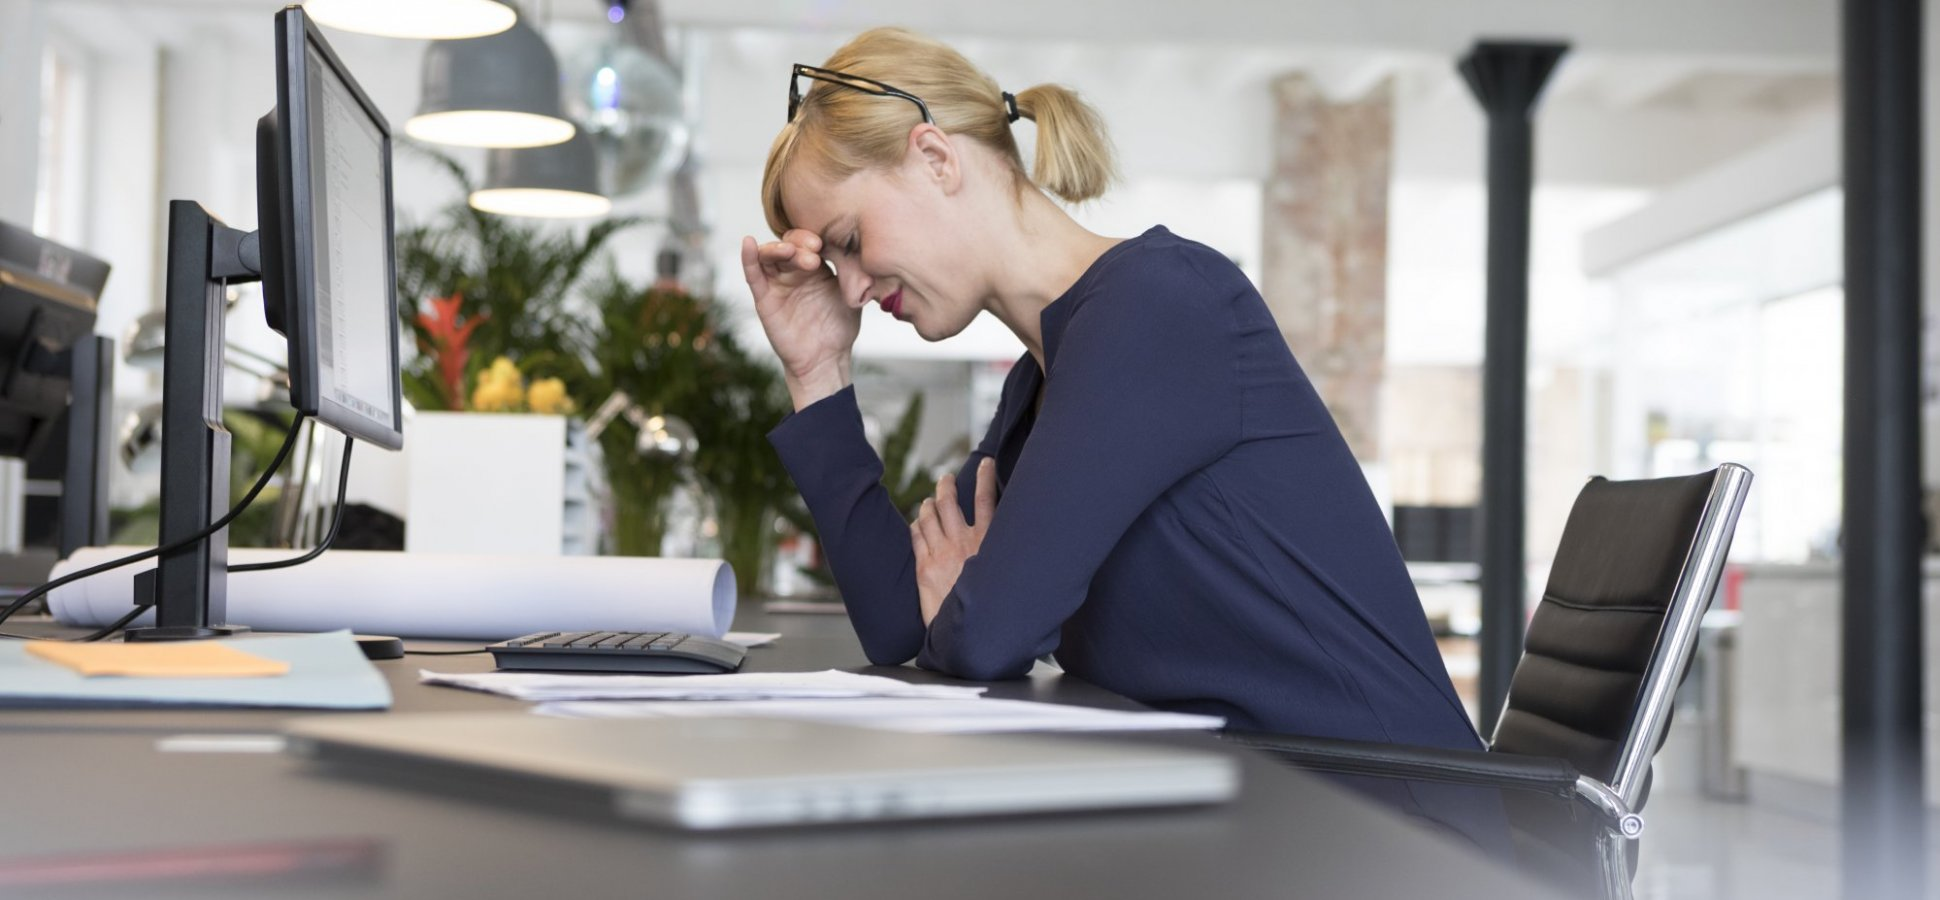 Is Your Best Employee Burning Out? Here Are 7 Ways to Reignite Their Spark